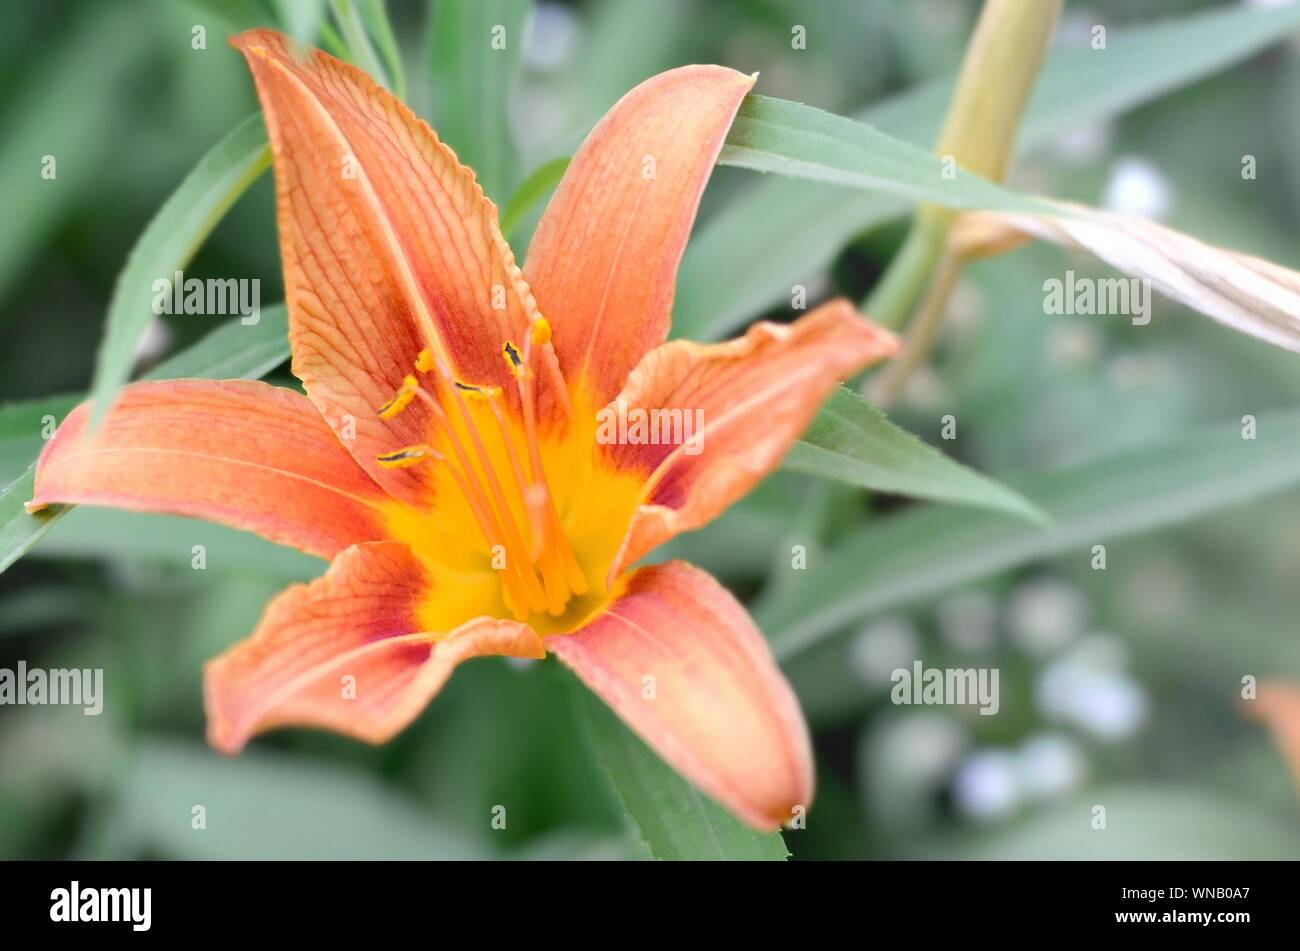 Orange lily flowers with green stems grow in a country house garden. Lilium bulbiferum is a herbaceous European lily with underground bulbs Stock Photo